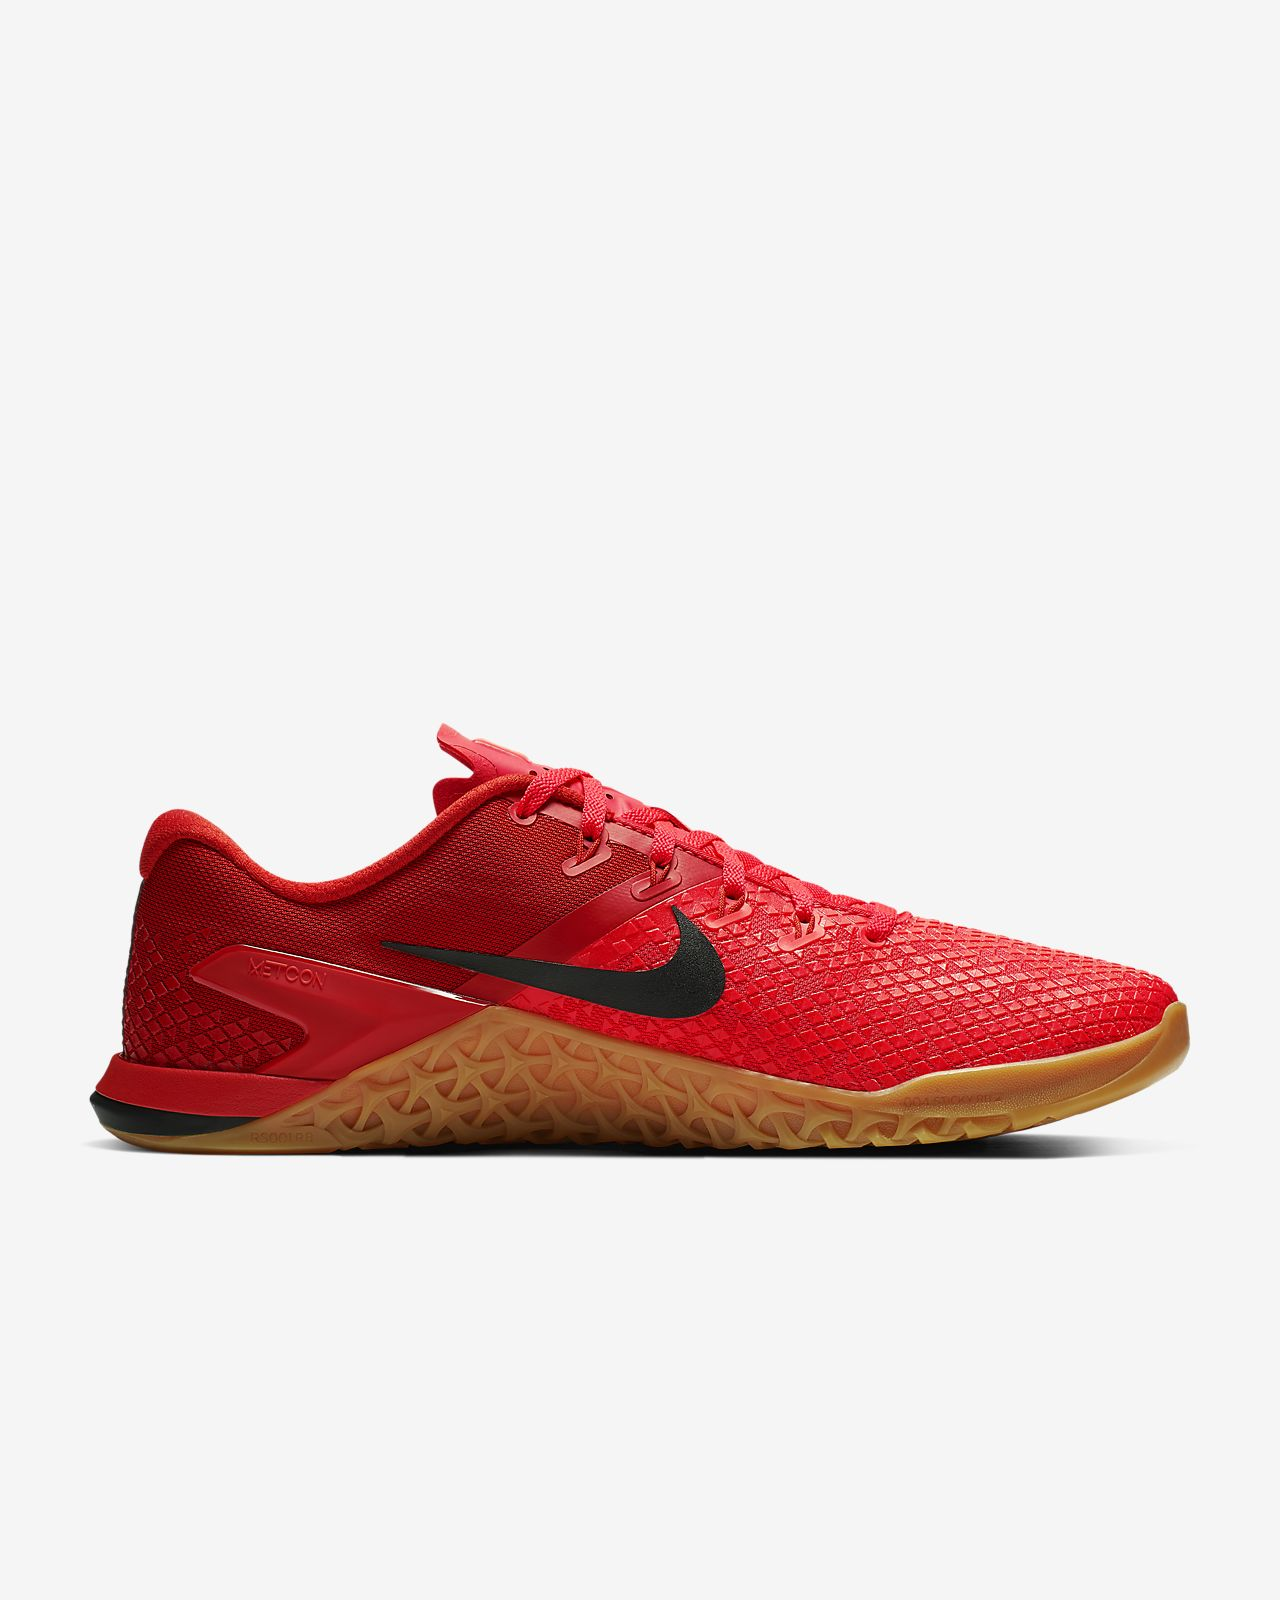 the best attitude 539bd 2dd38 ... Nike Metcon 4 XD Men s Training Shoe